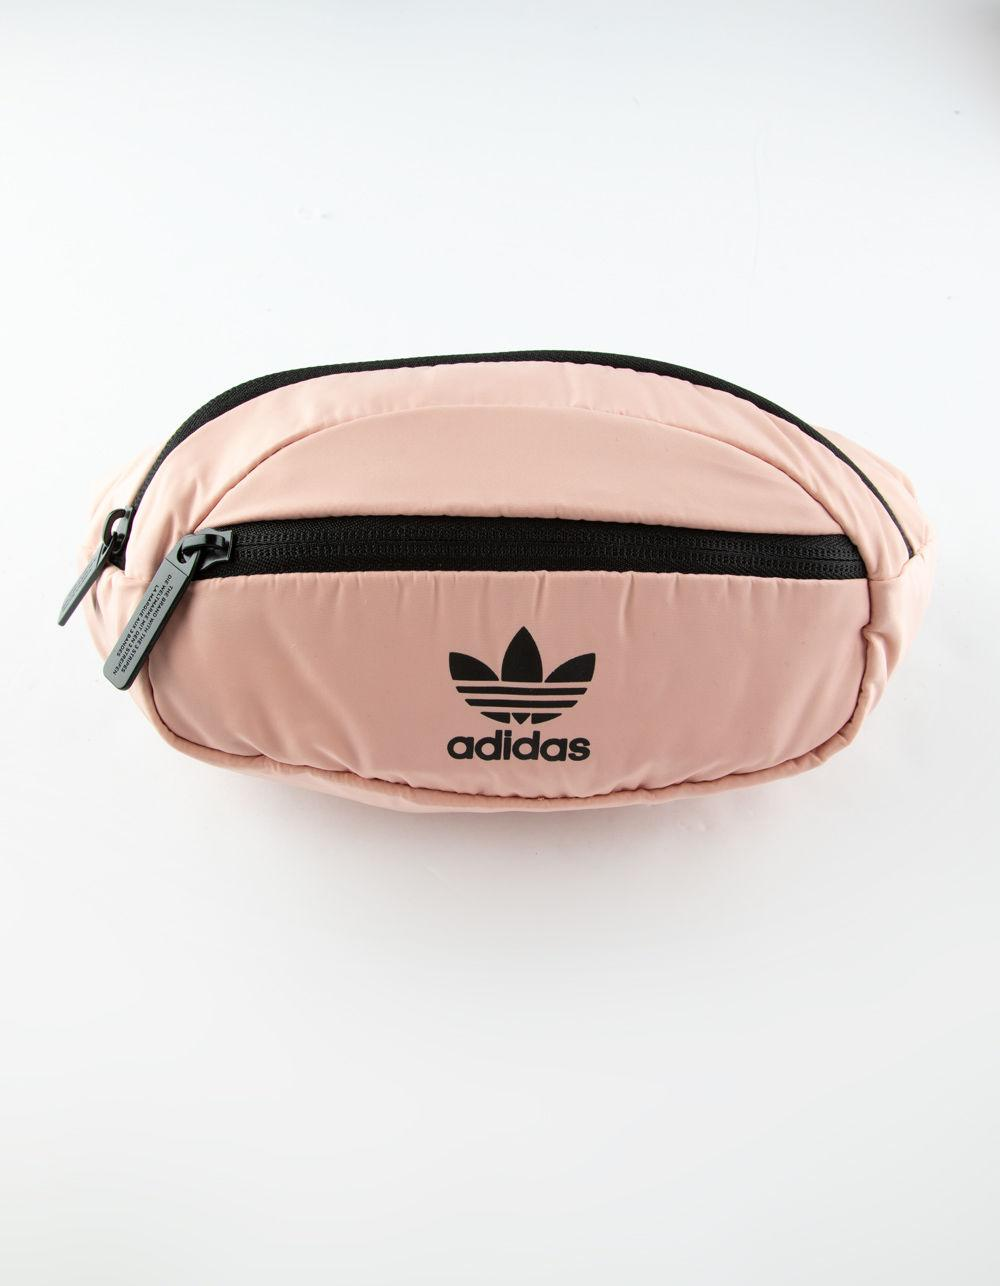 Lyst - adidas Originals National Pink Fanny Pack in Pink - Save 4% 9a7593a156ff0